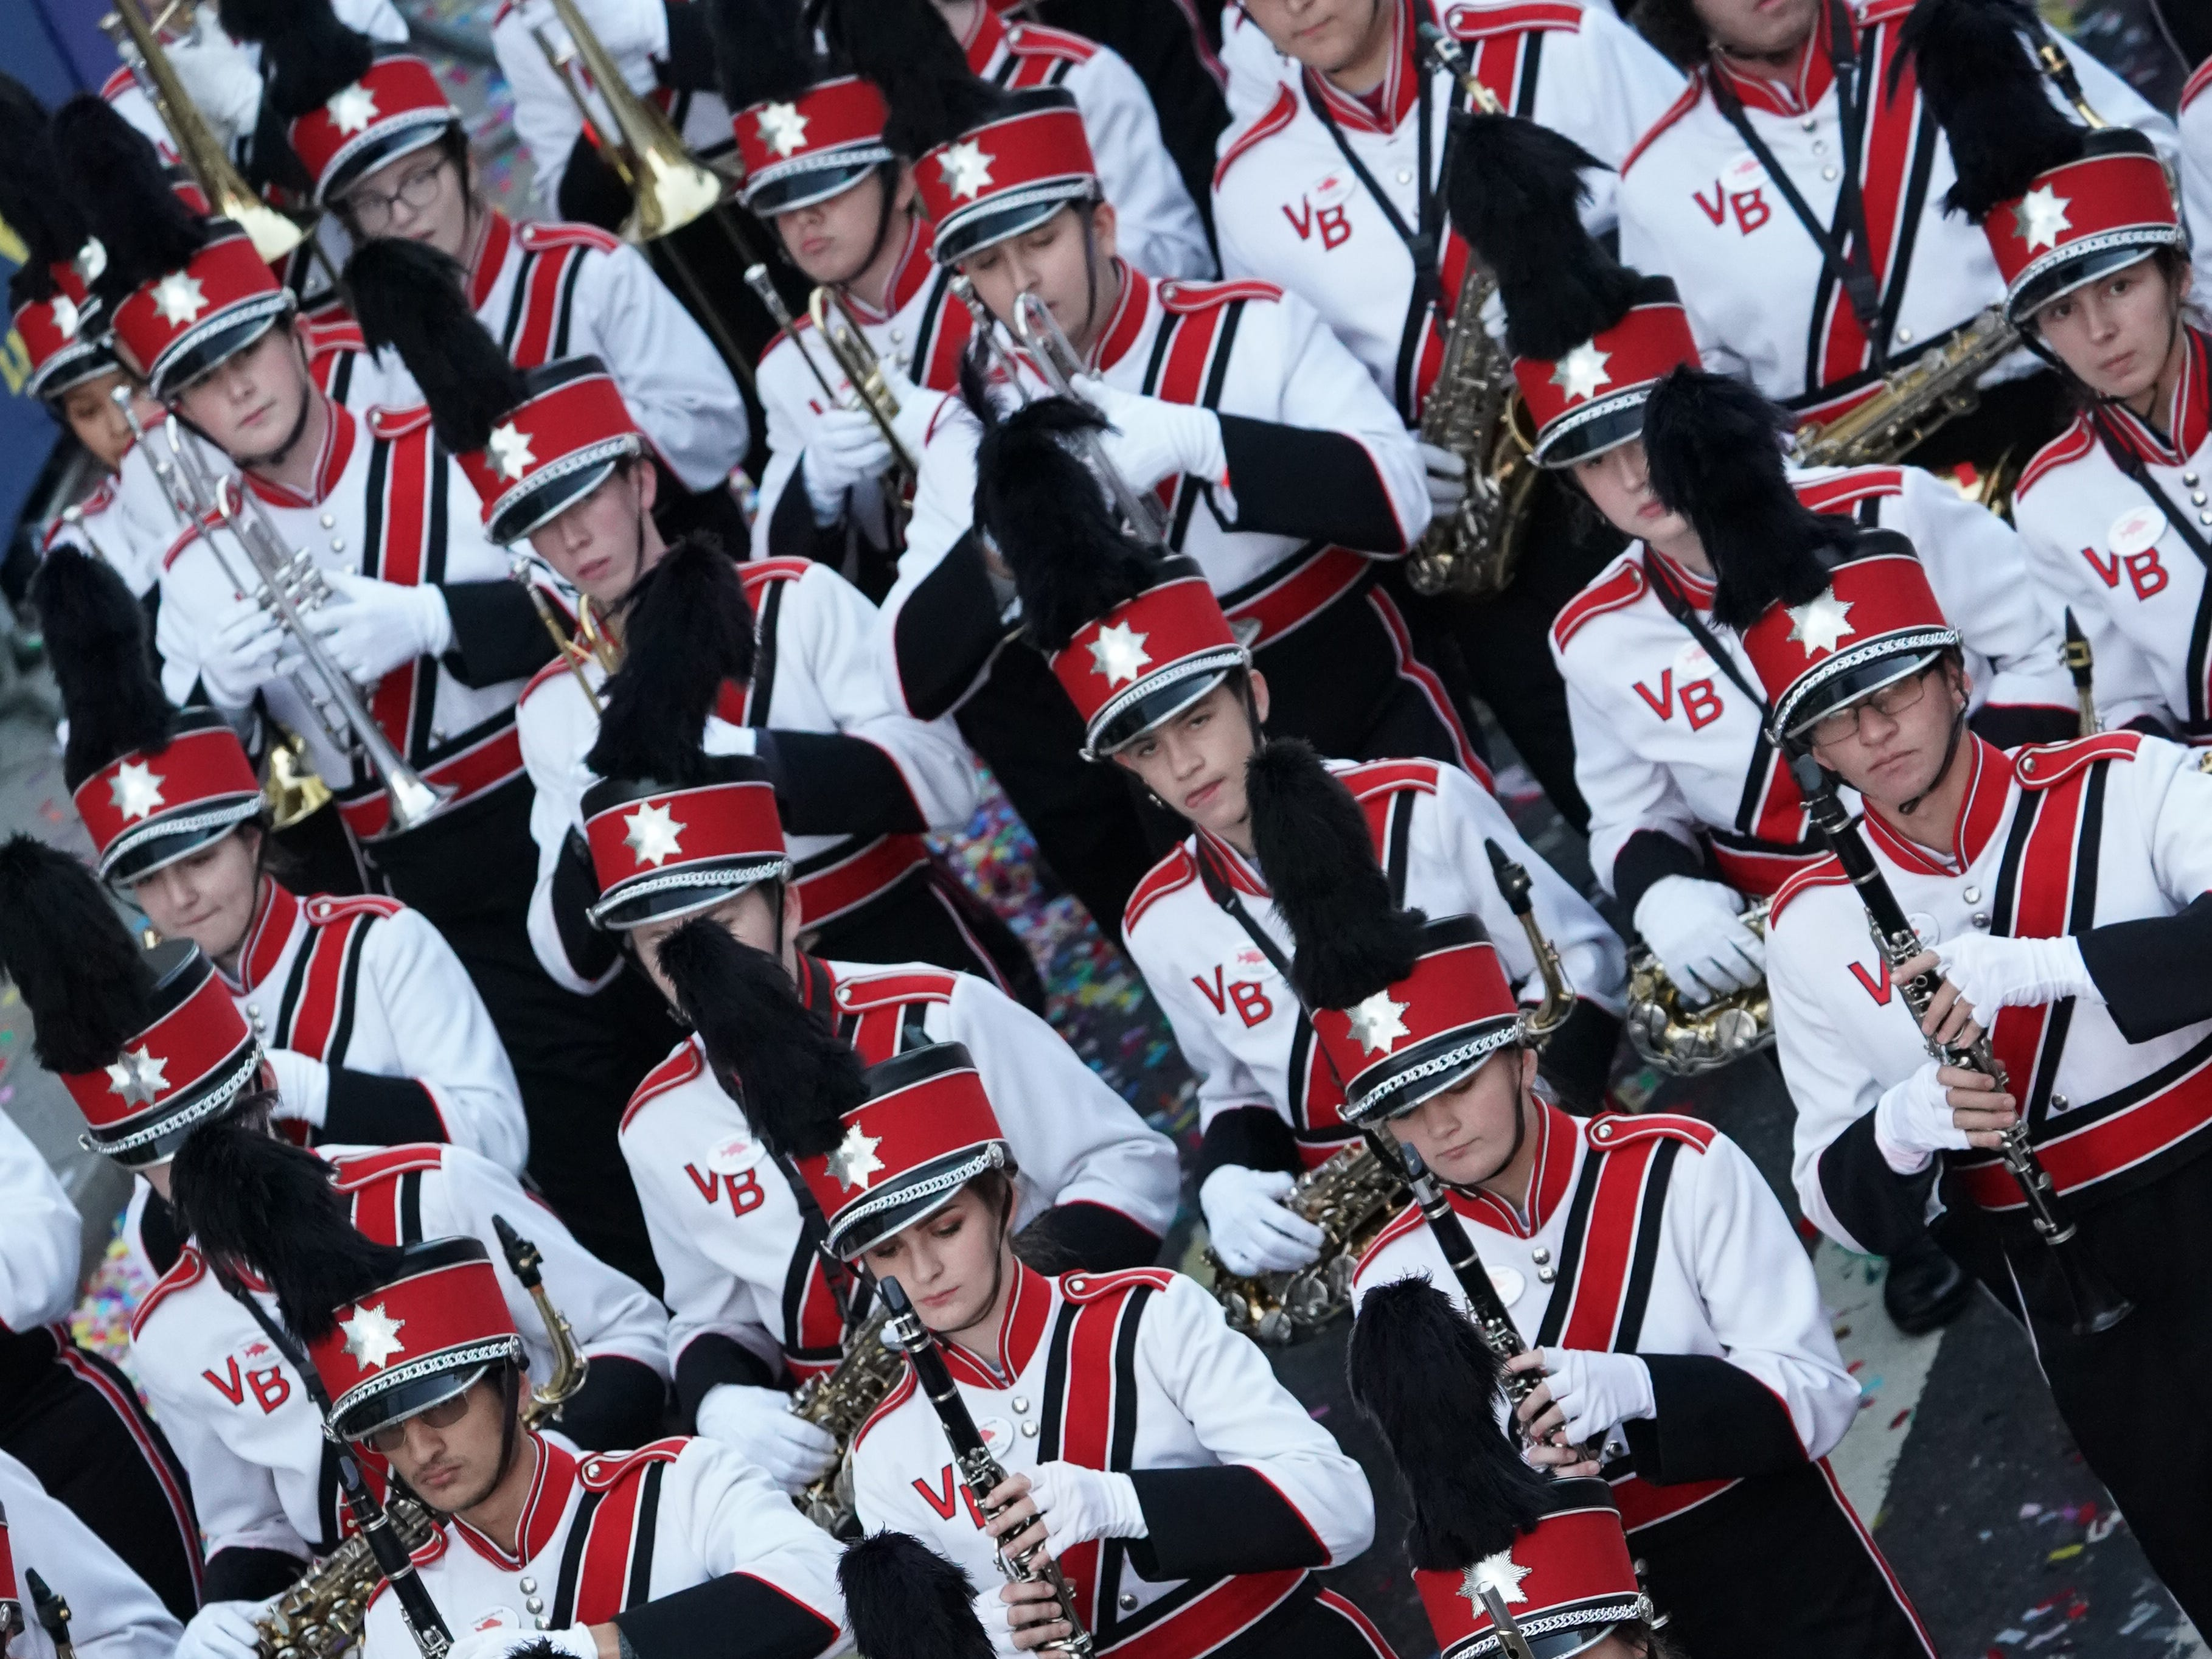 The Vero Beach High School marching band performs in England at the London New Year's Day Parade on Jan. 1, 2019, in the streets on the city's West End.